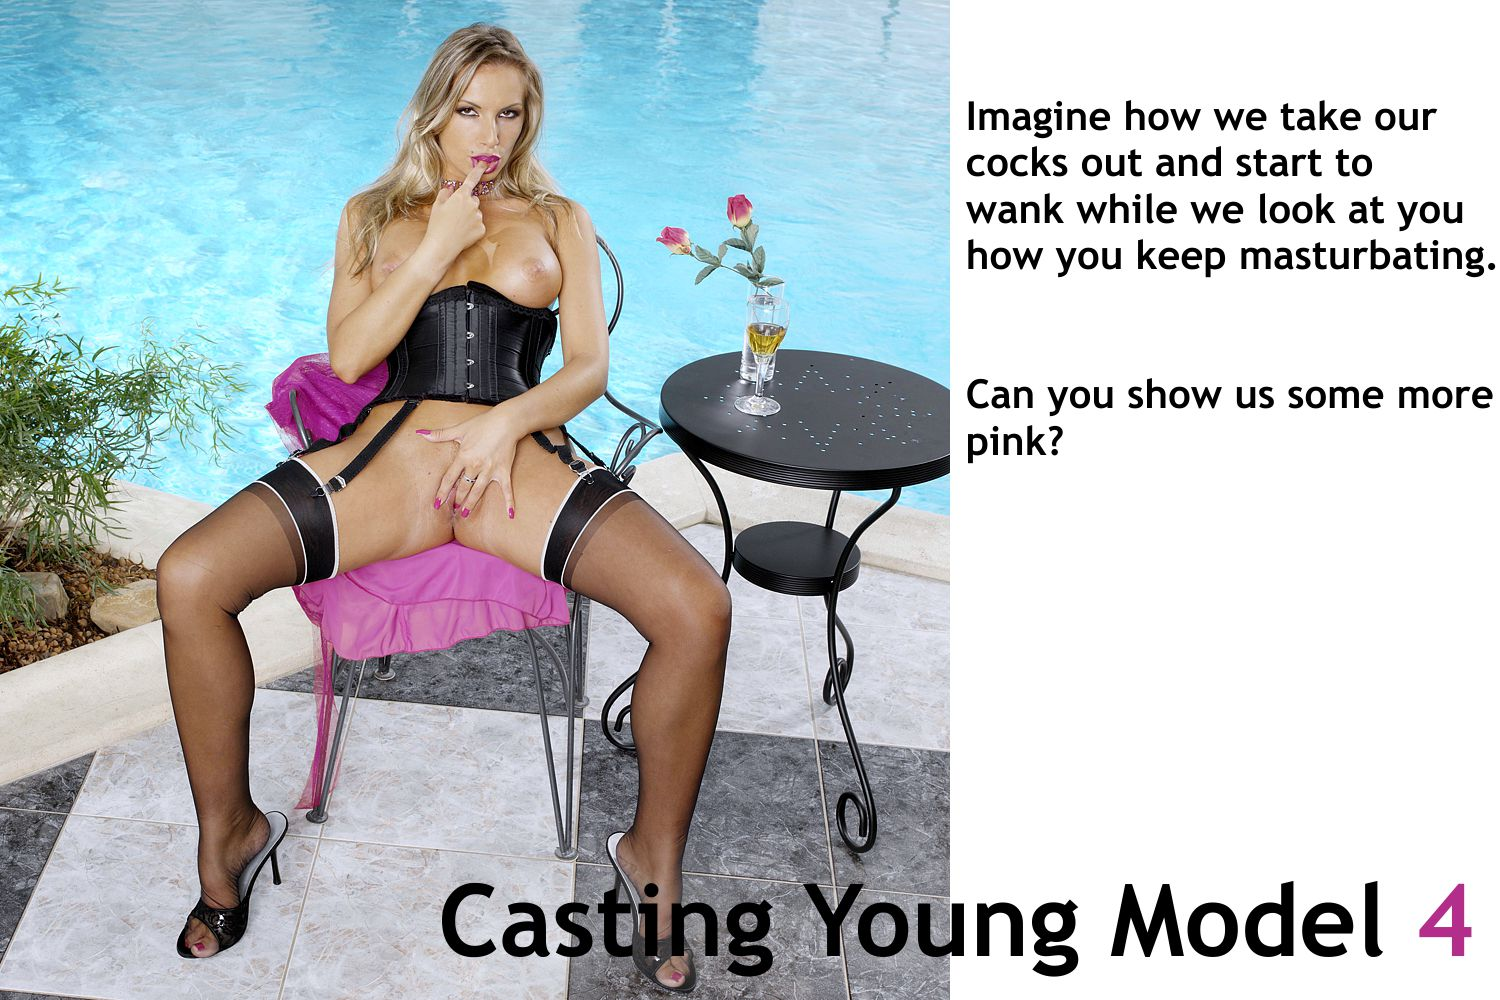 casting_young_model_4_009